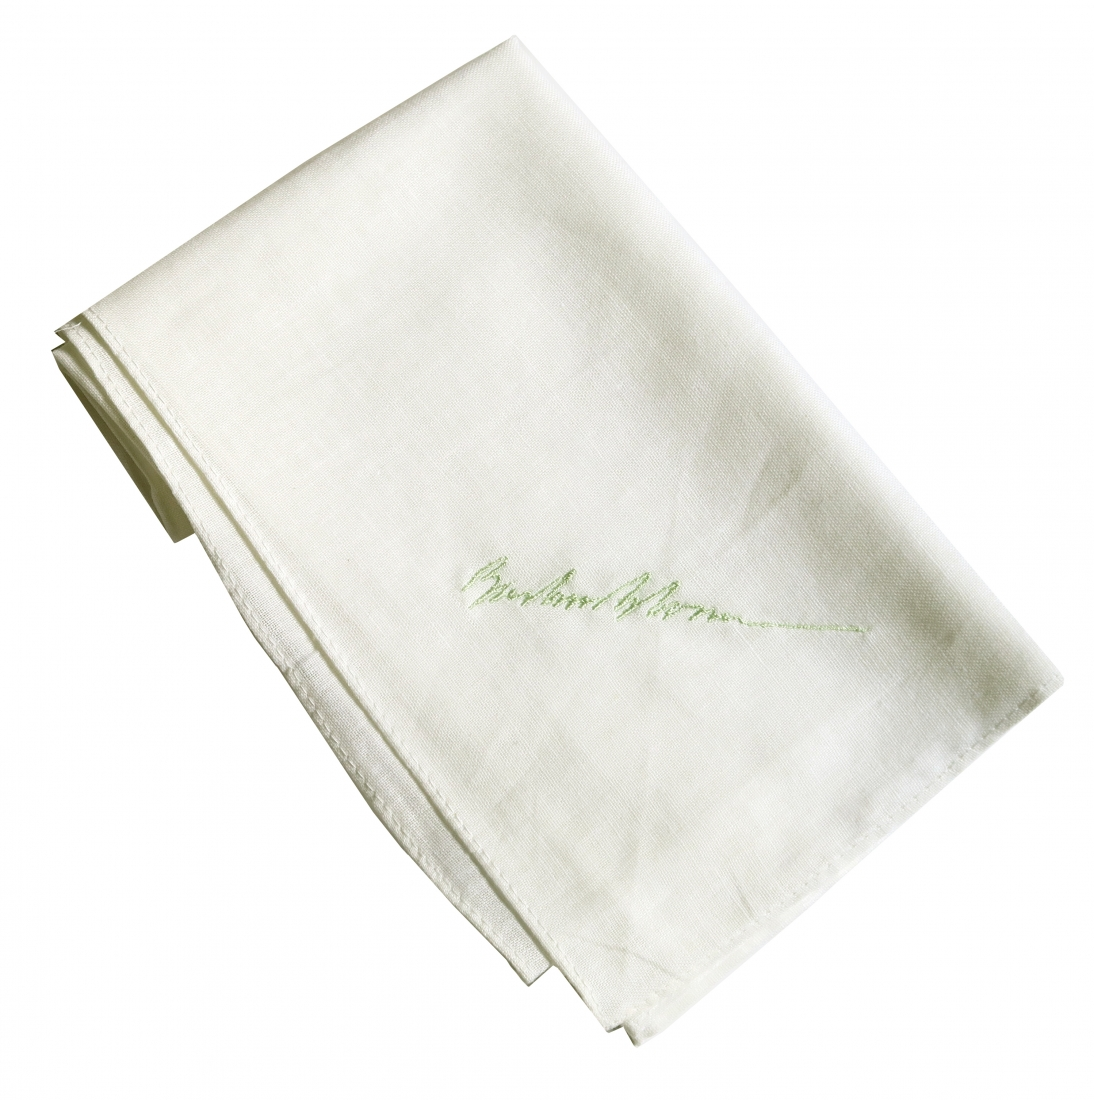 Barbara Bloom, The Reign of Narcissism- Signature Handkerchief